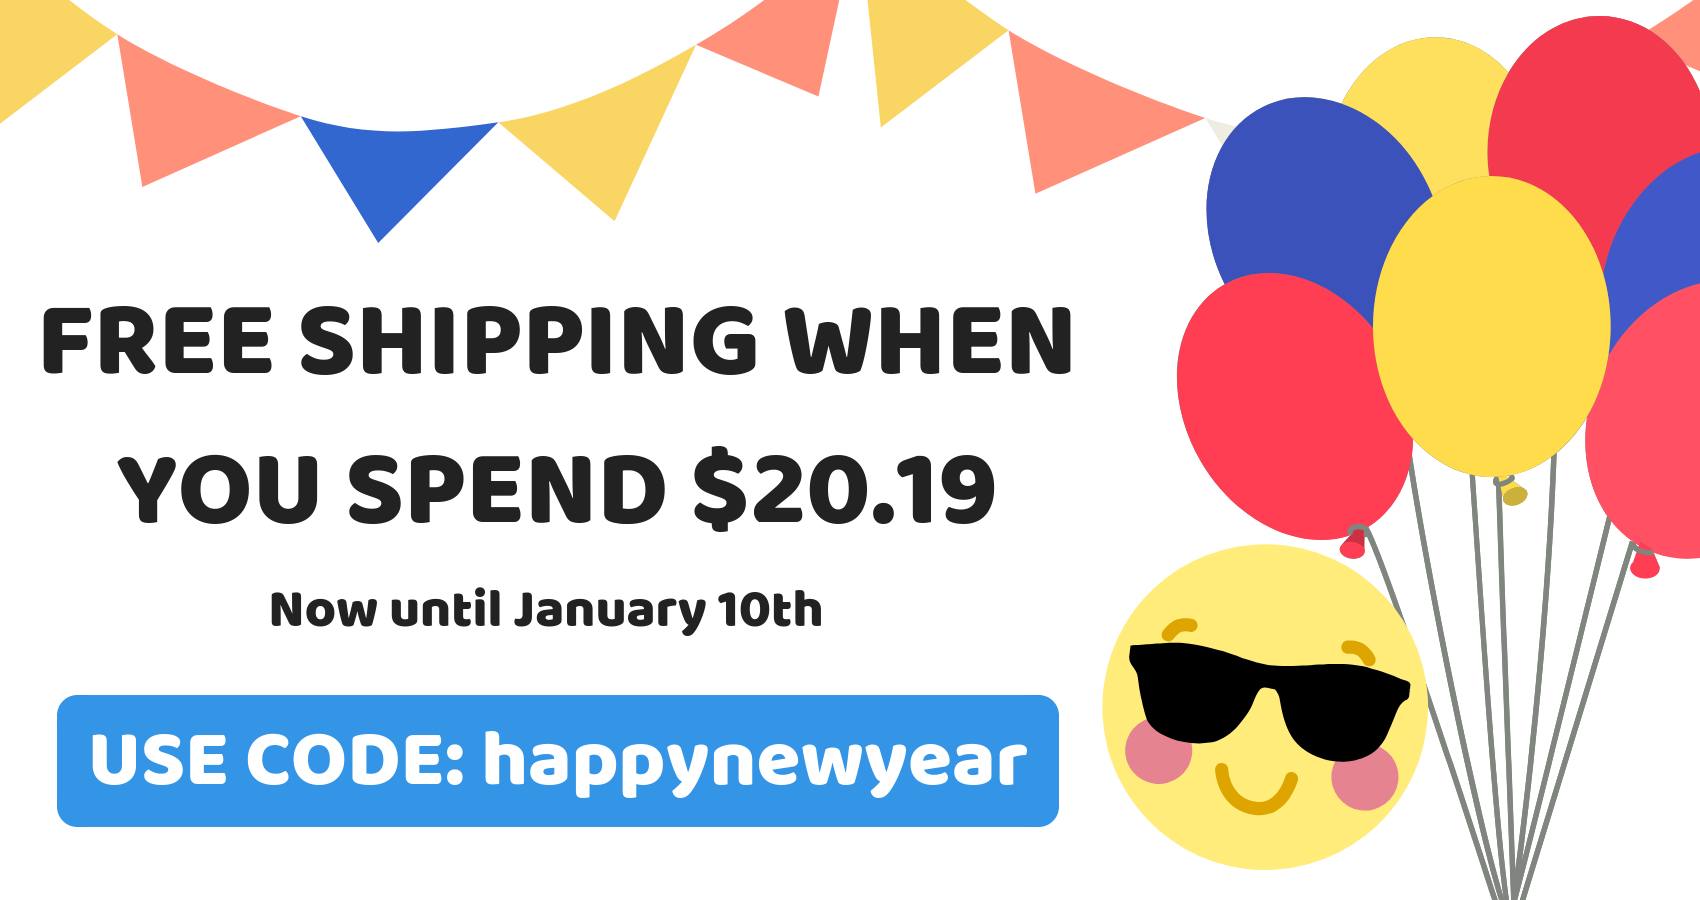 Free shipping when you spend $20.19, now until January 10th. Use code happynewyear